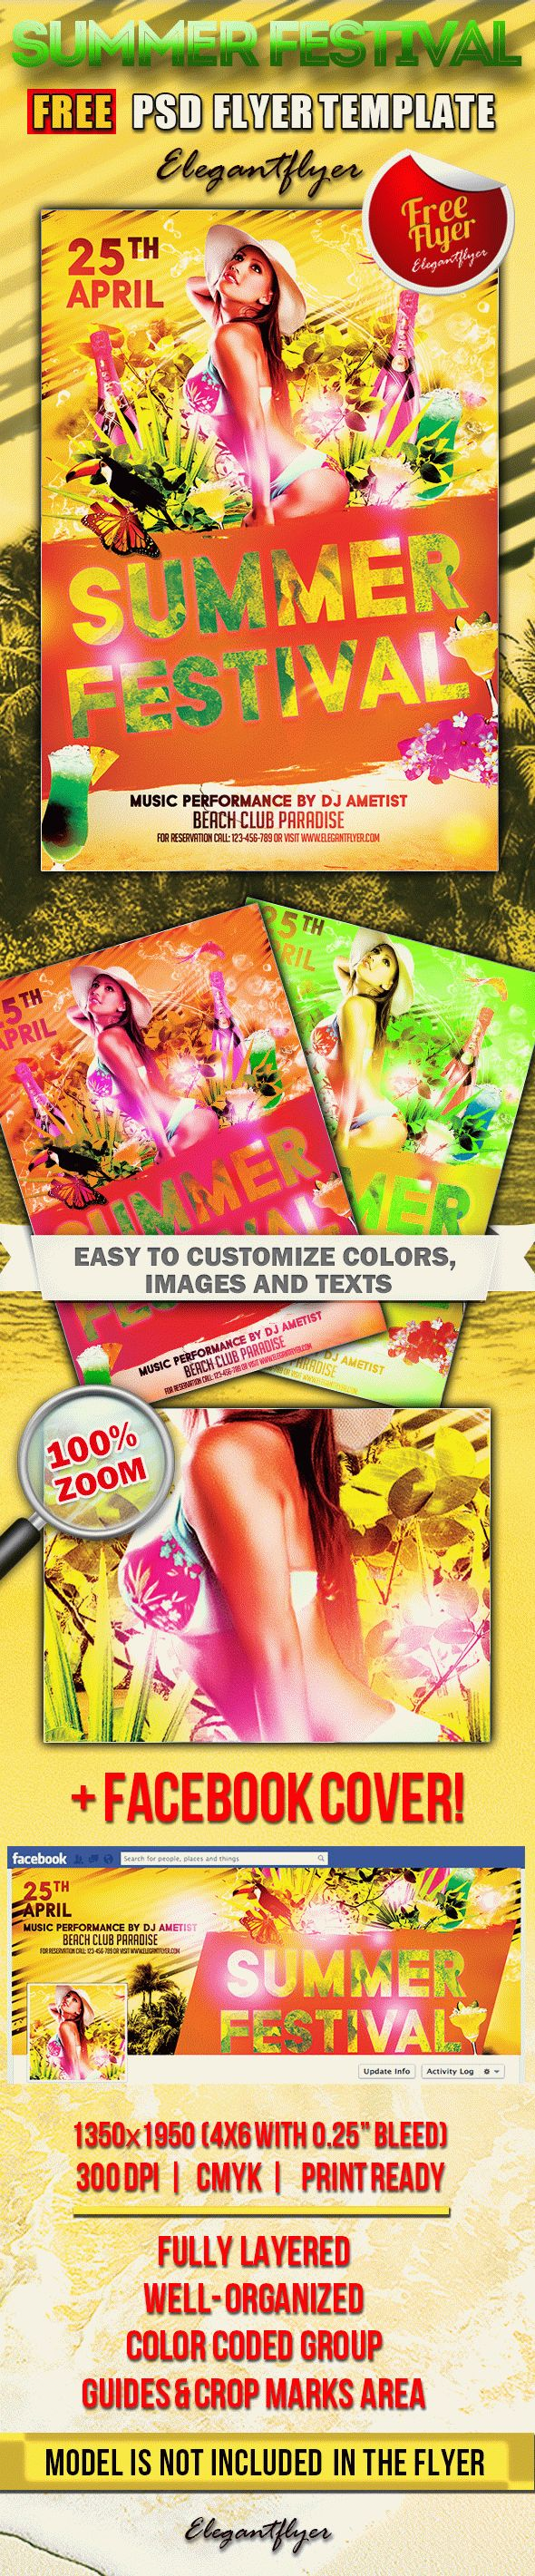 Summer Festival – Free Flyer PSD Template